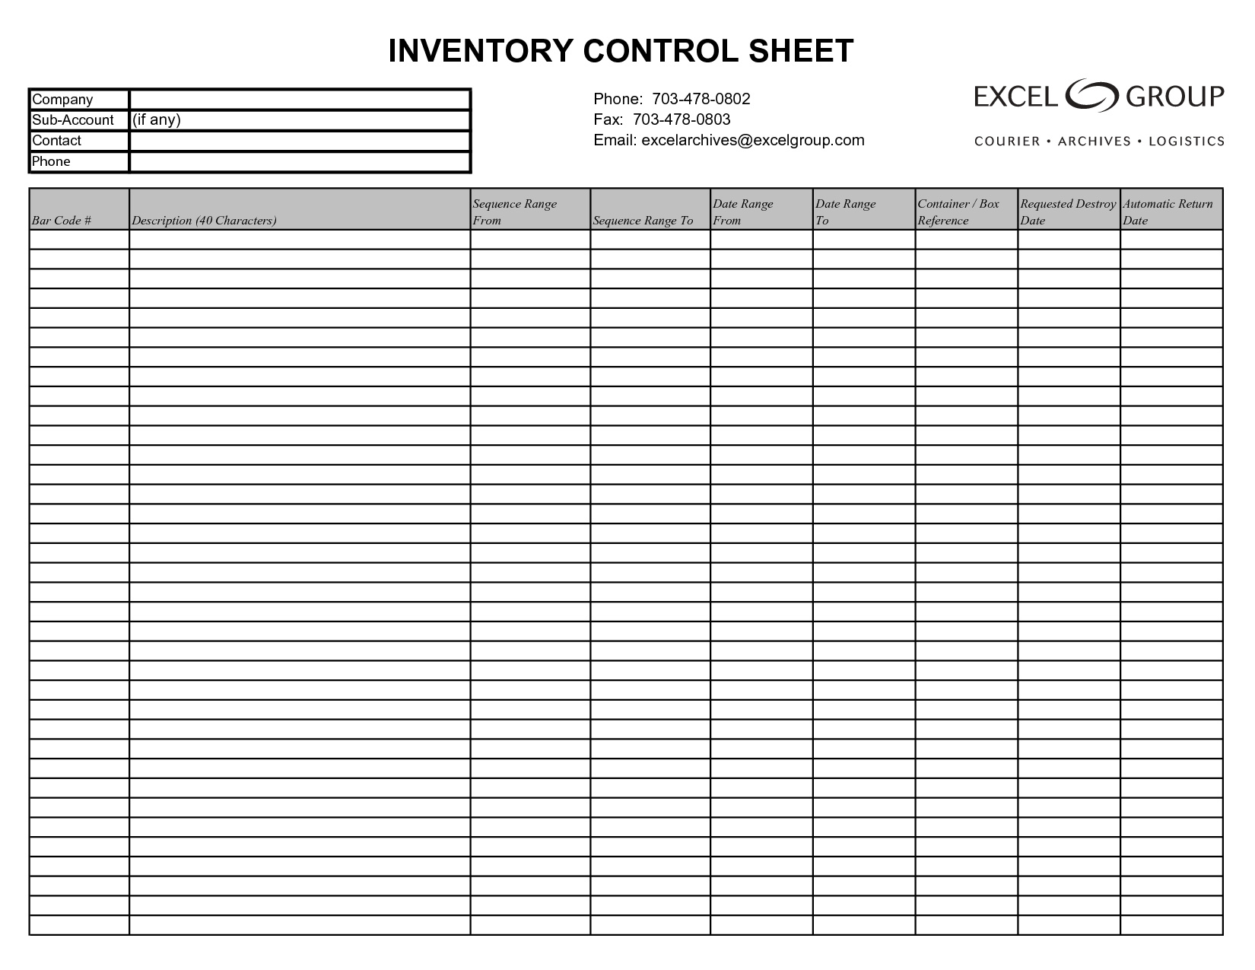 Inventory Spreadsheet Template Excel Product Tracking | My Intended For Basic Inventory Spreadsheet Template